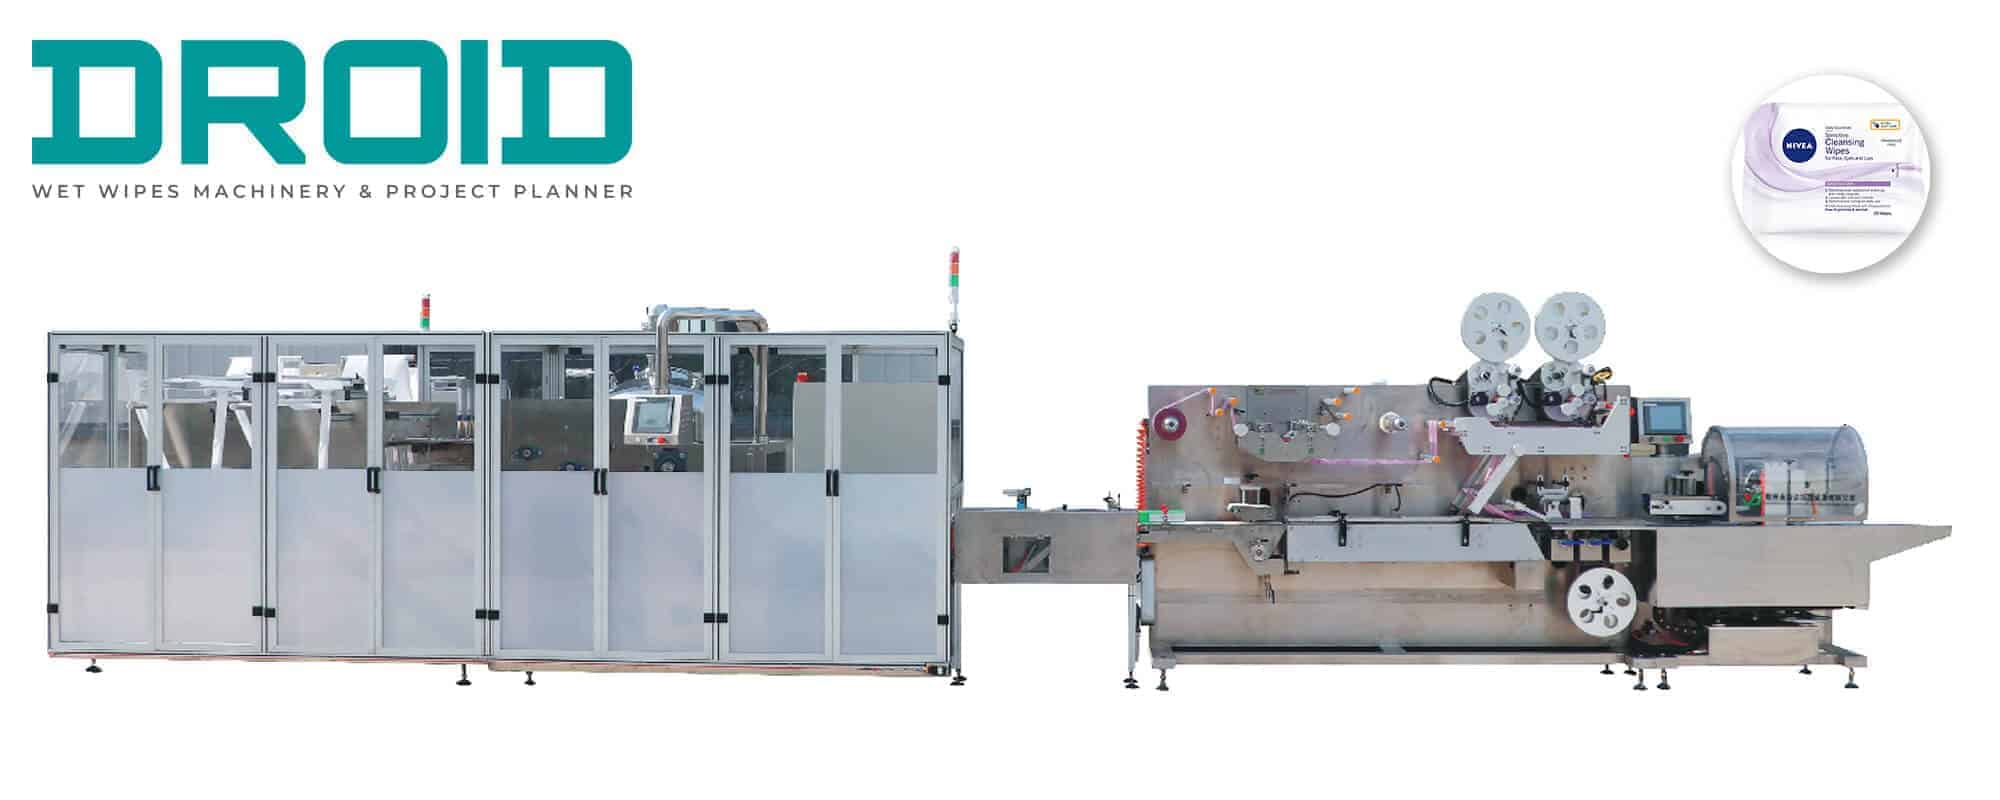 UT FL4 cross fold wet wipes converting and packaging machine - Wet Wipes Machine Products